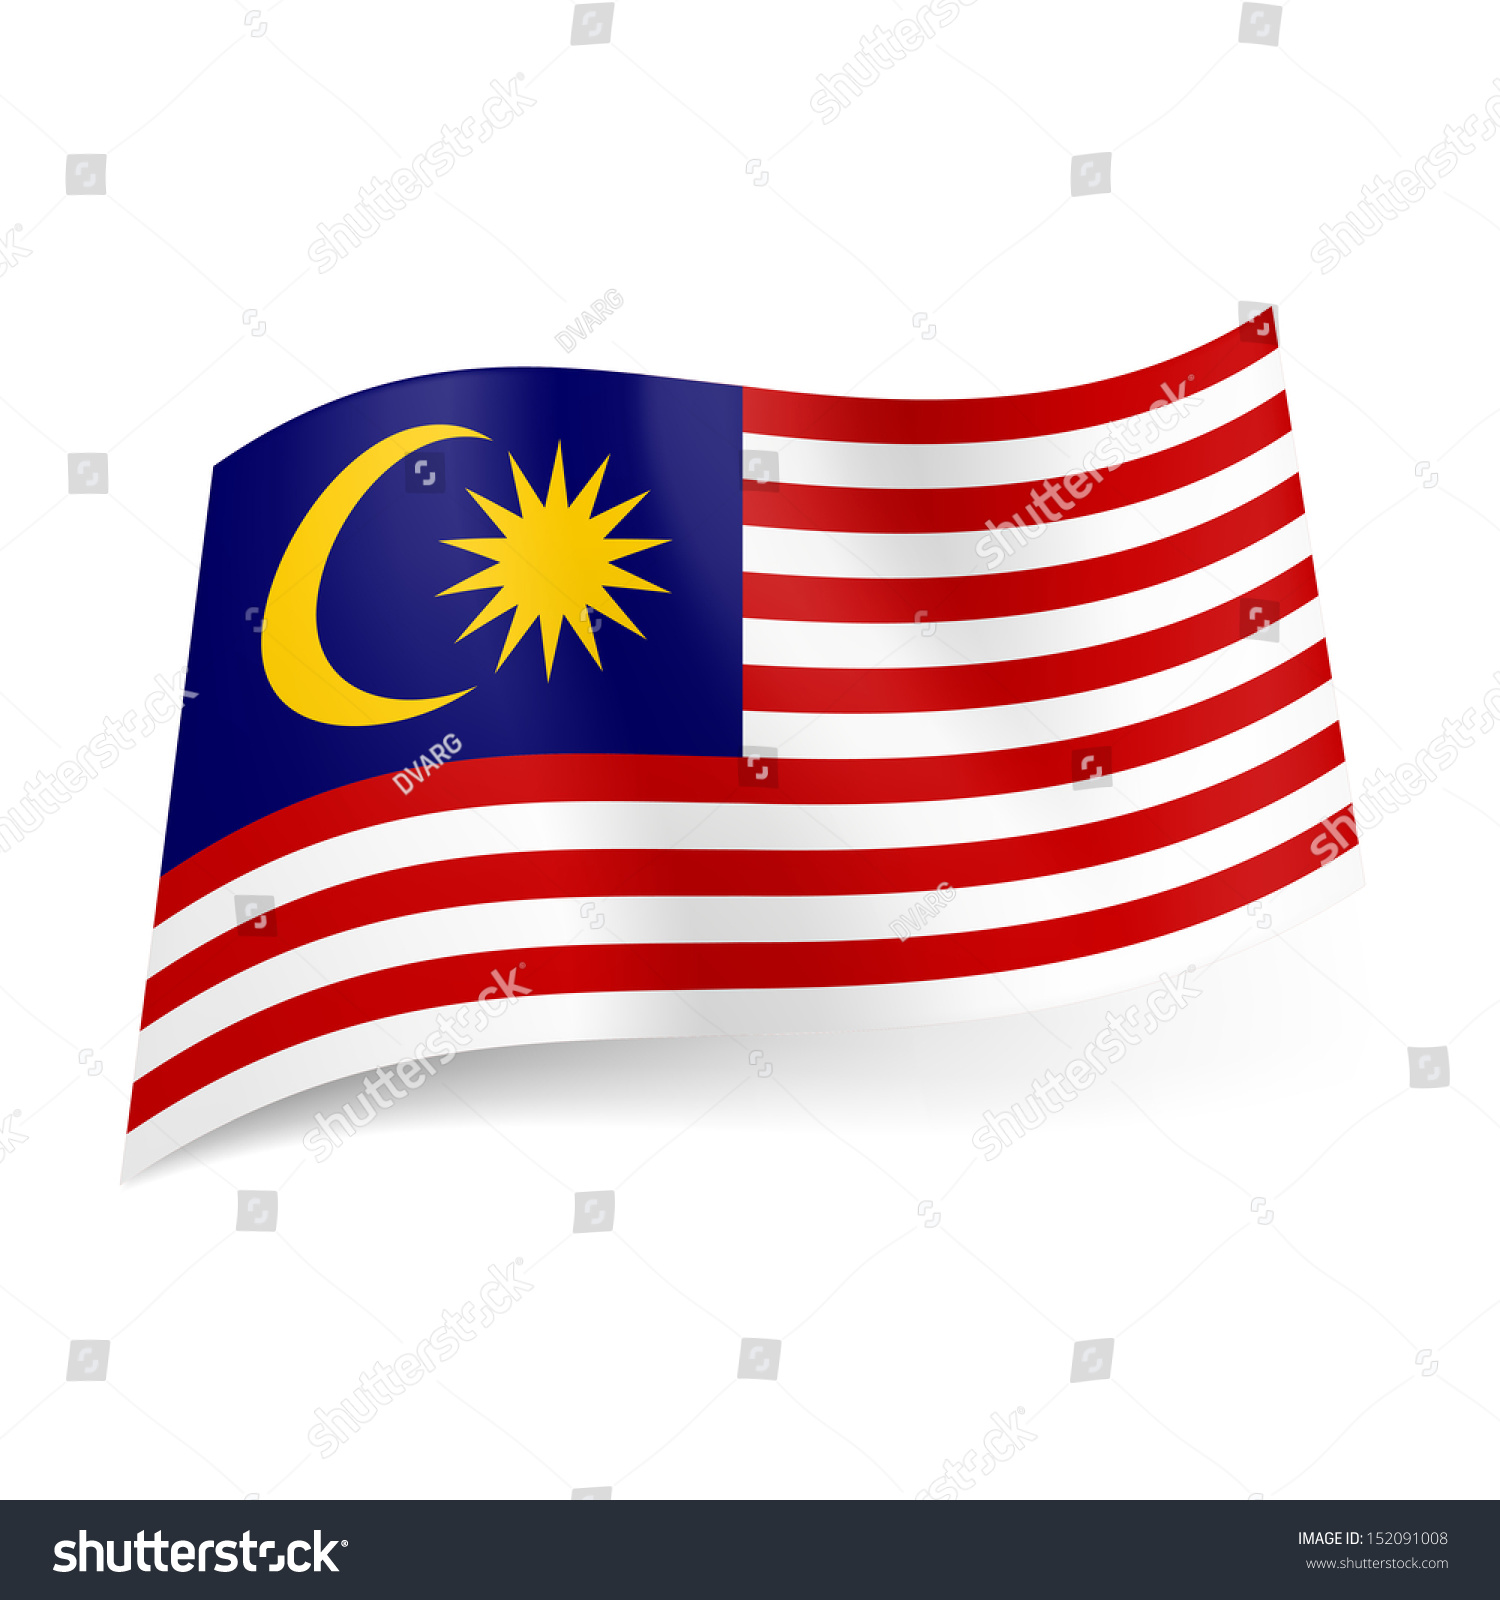 National Flag Malaysia Red White Horizontal Stock Vector Royalty Free 152091008